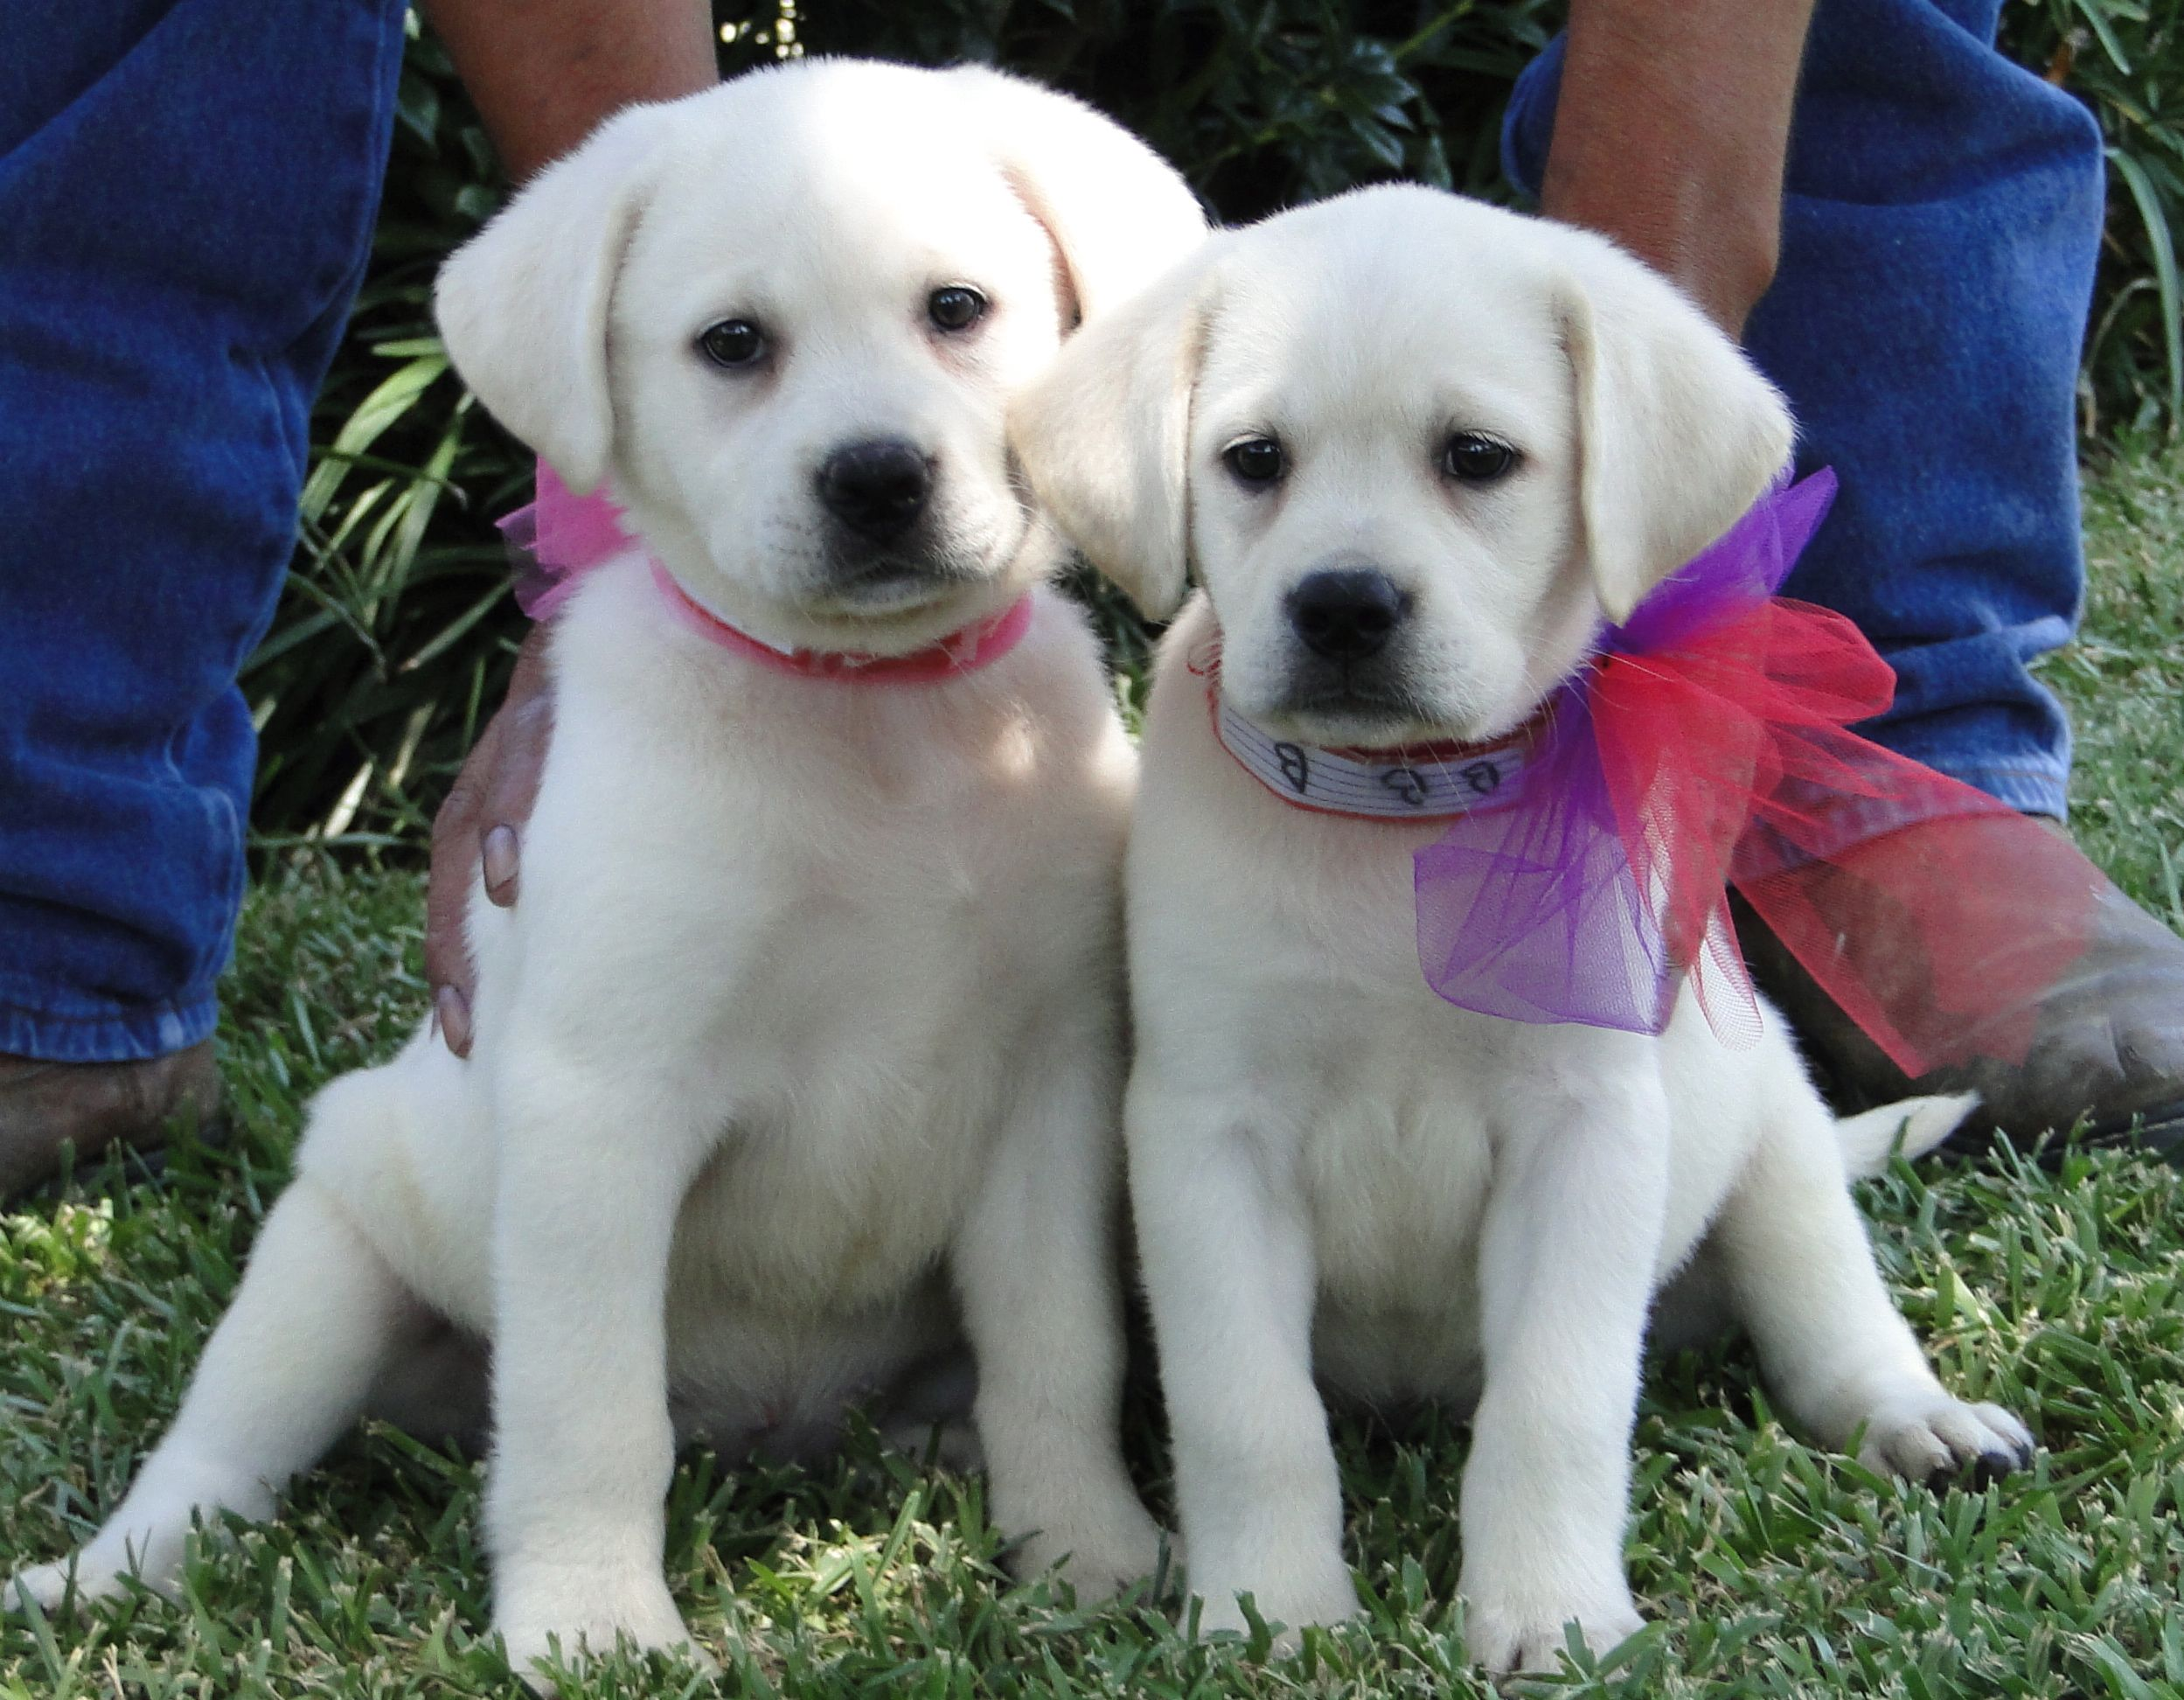 Wow So White And Gorgeous I Really Enjoy Raising Our Beautiful White Labrador Retrievers At Our Ranch In Texas Www Legacy Labs Com Lab Puppies Cute Animals Puppies